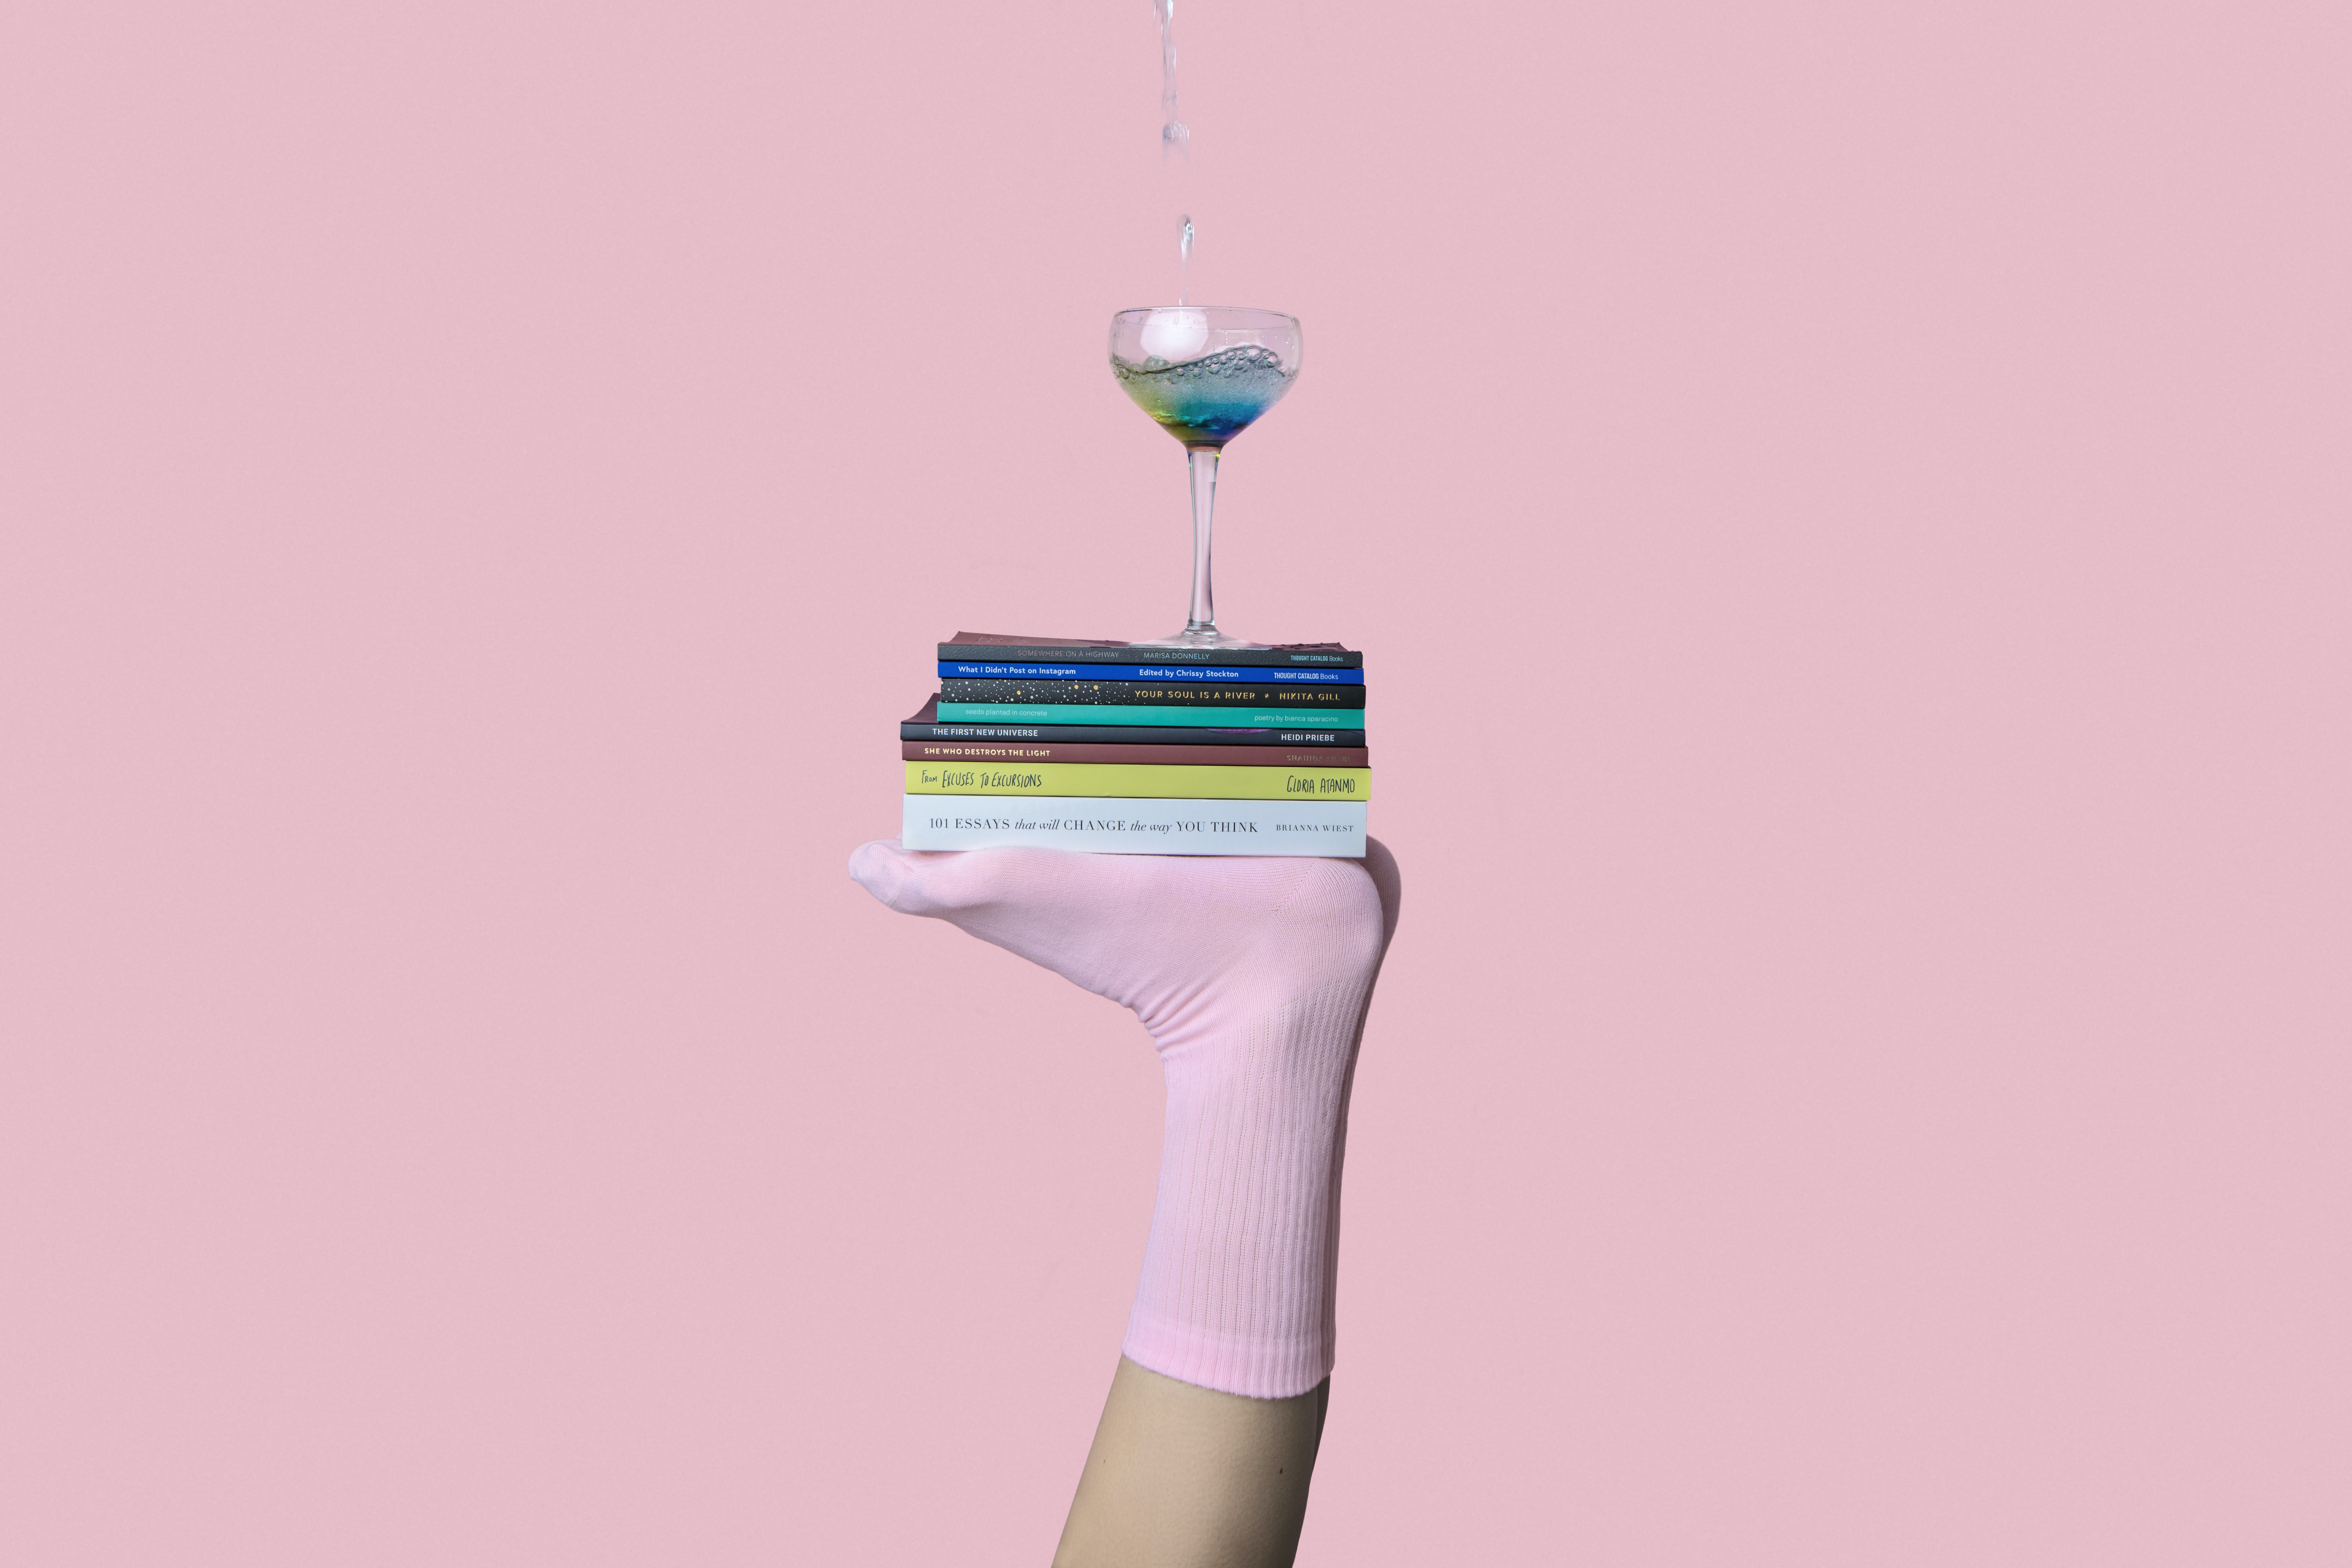 person balancing martini glass above book with feet